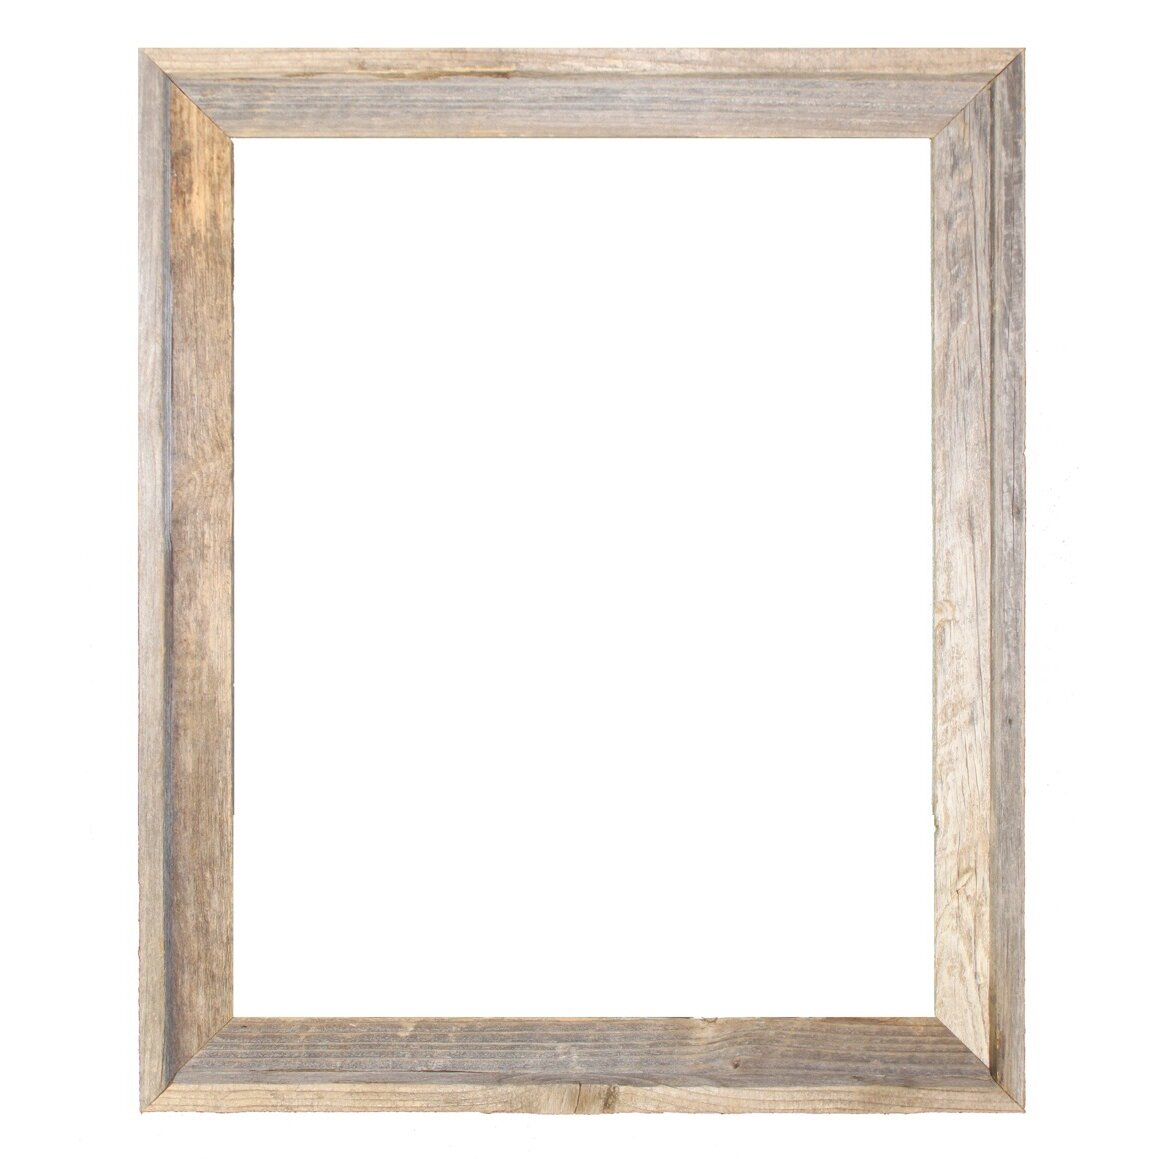 laurel foundry modern farmhouse rustic reclaimed barn wood open picture frame